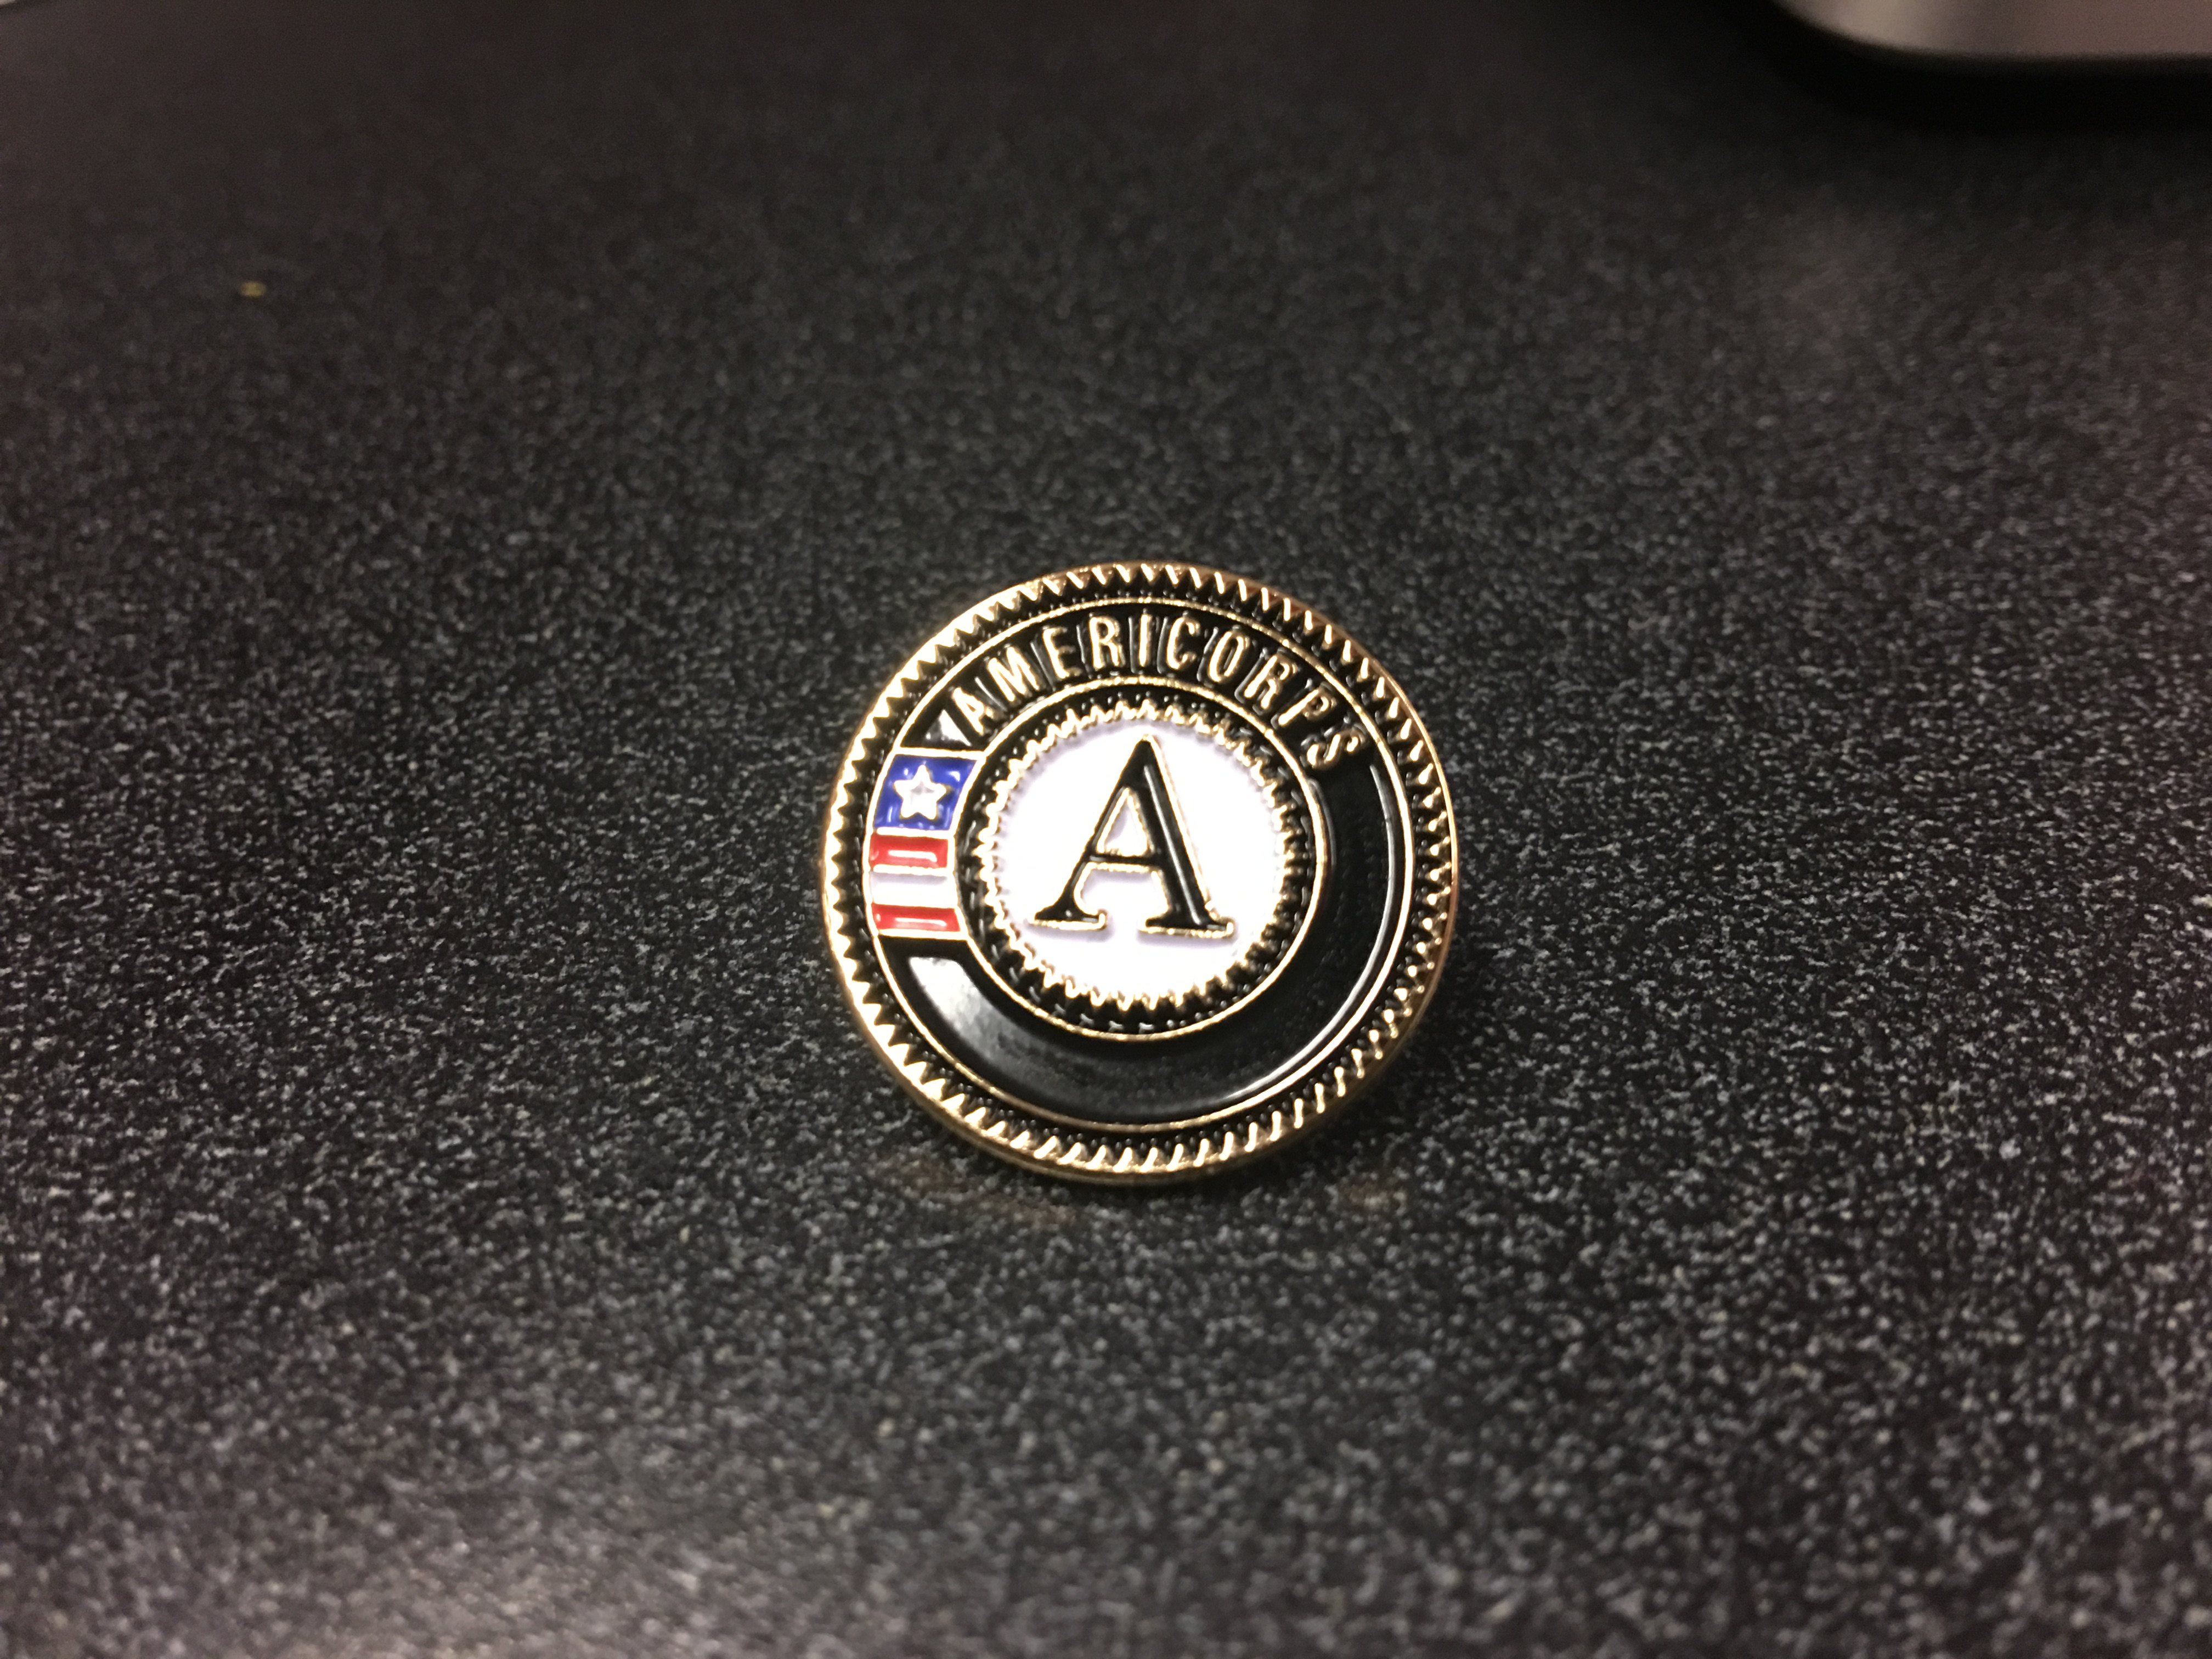 justice AmeriCorps pin.